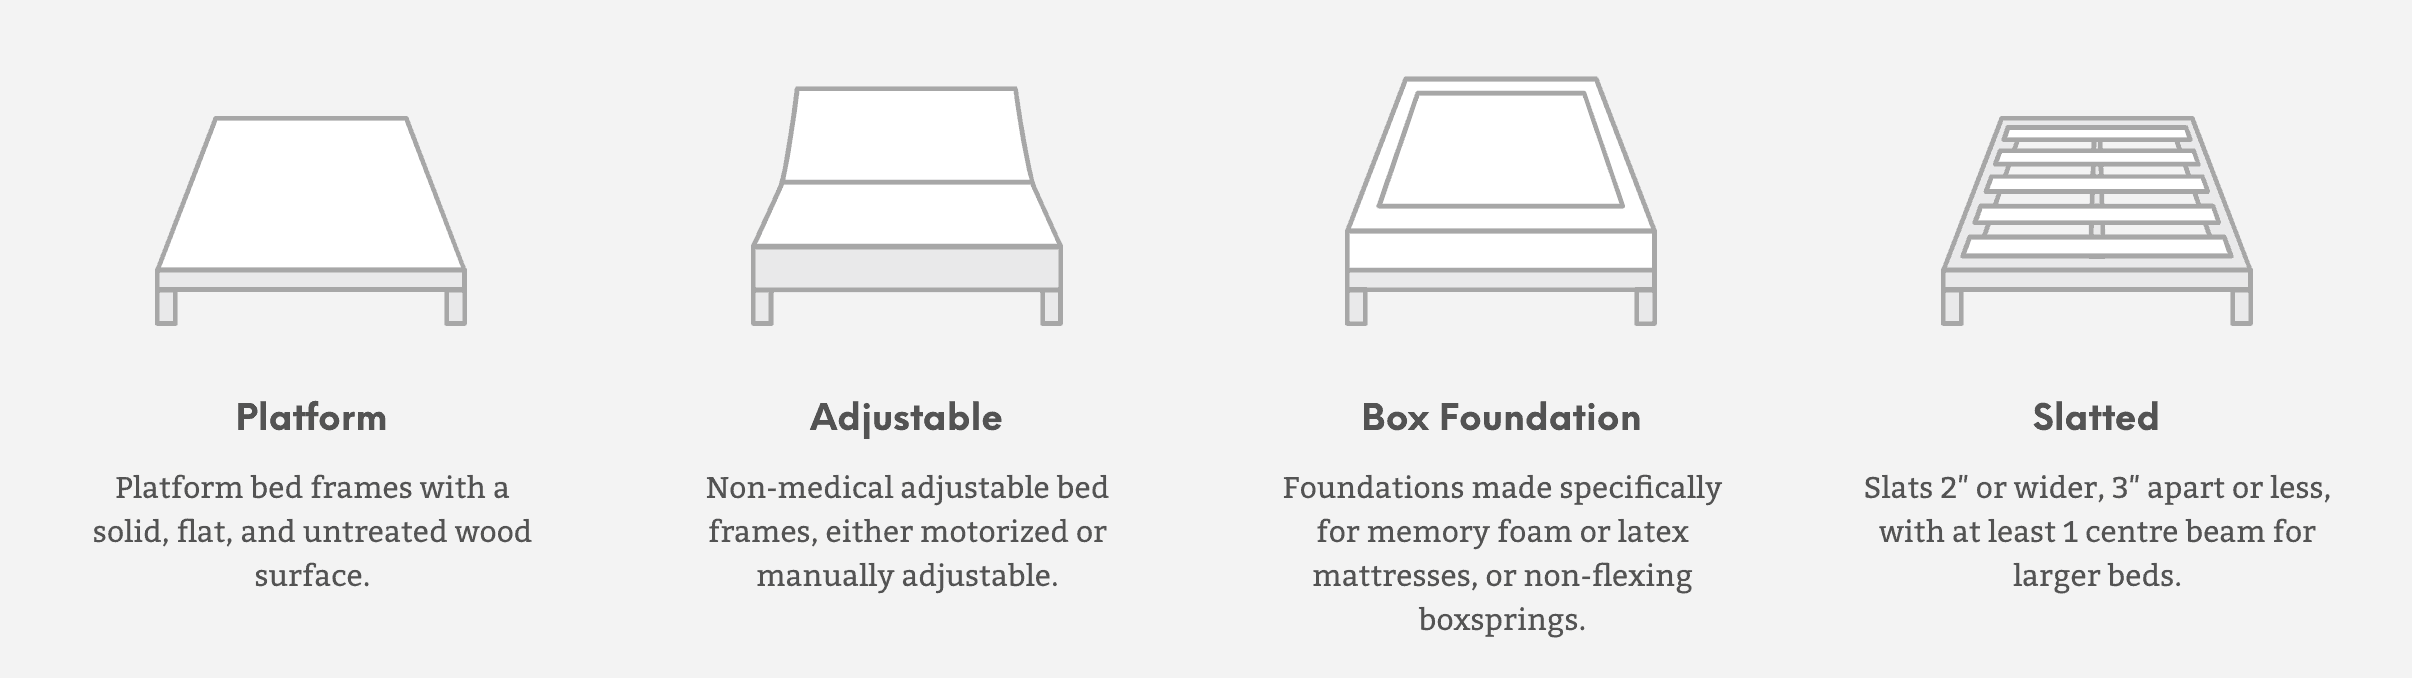 What kind of bases is The Douglas Mattress compatible with?